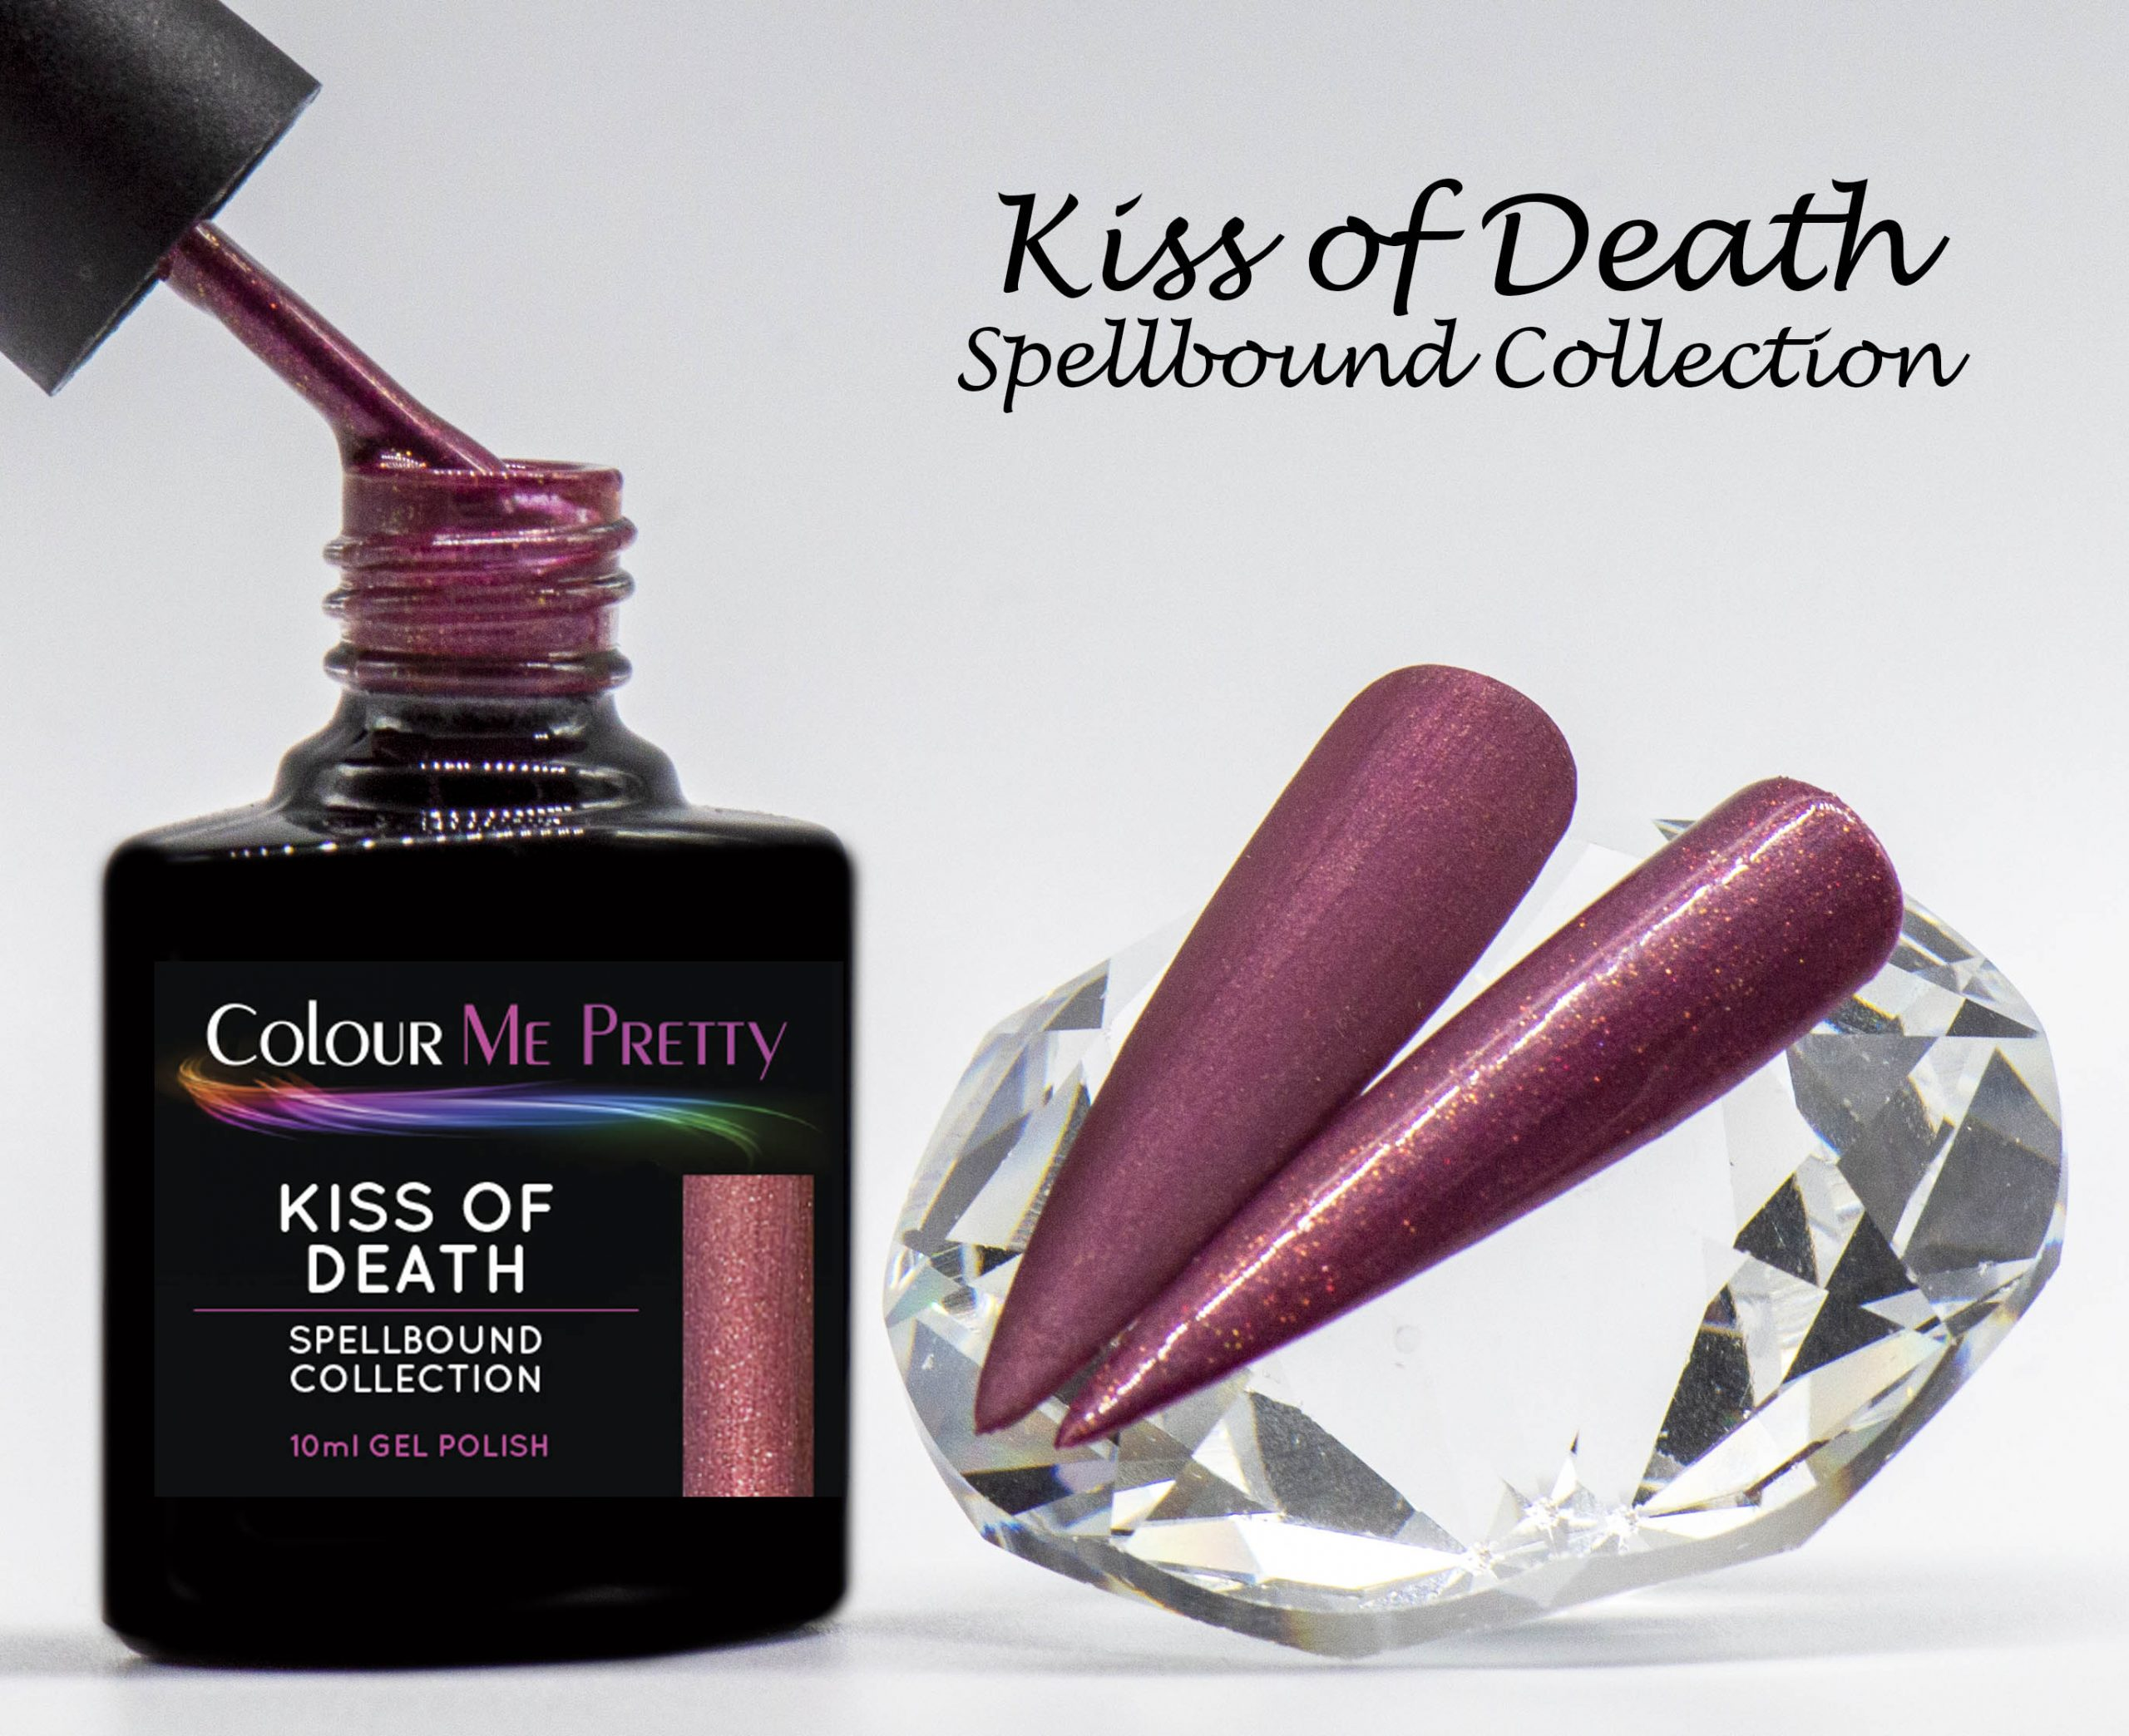 Spellbound Kiss of Death